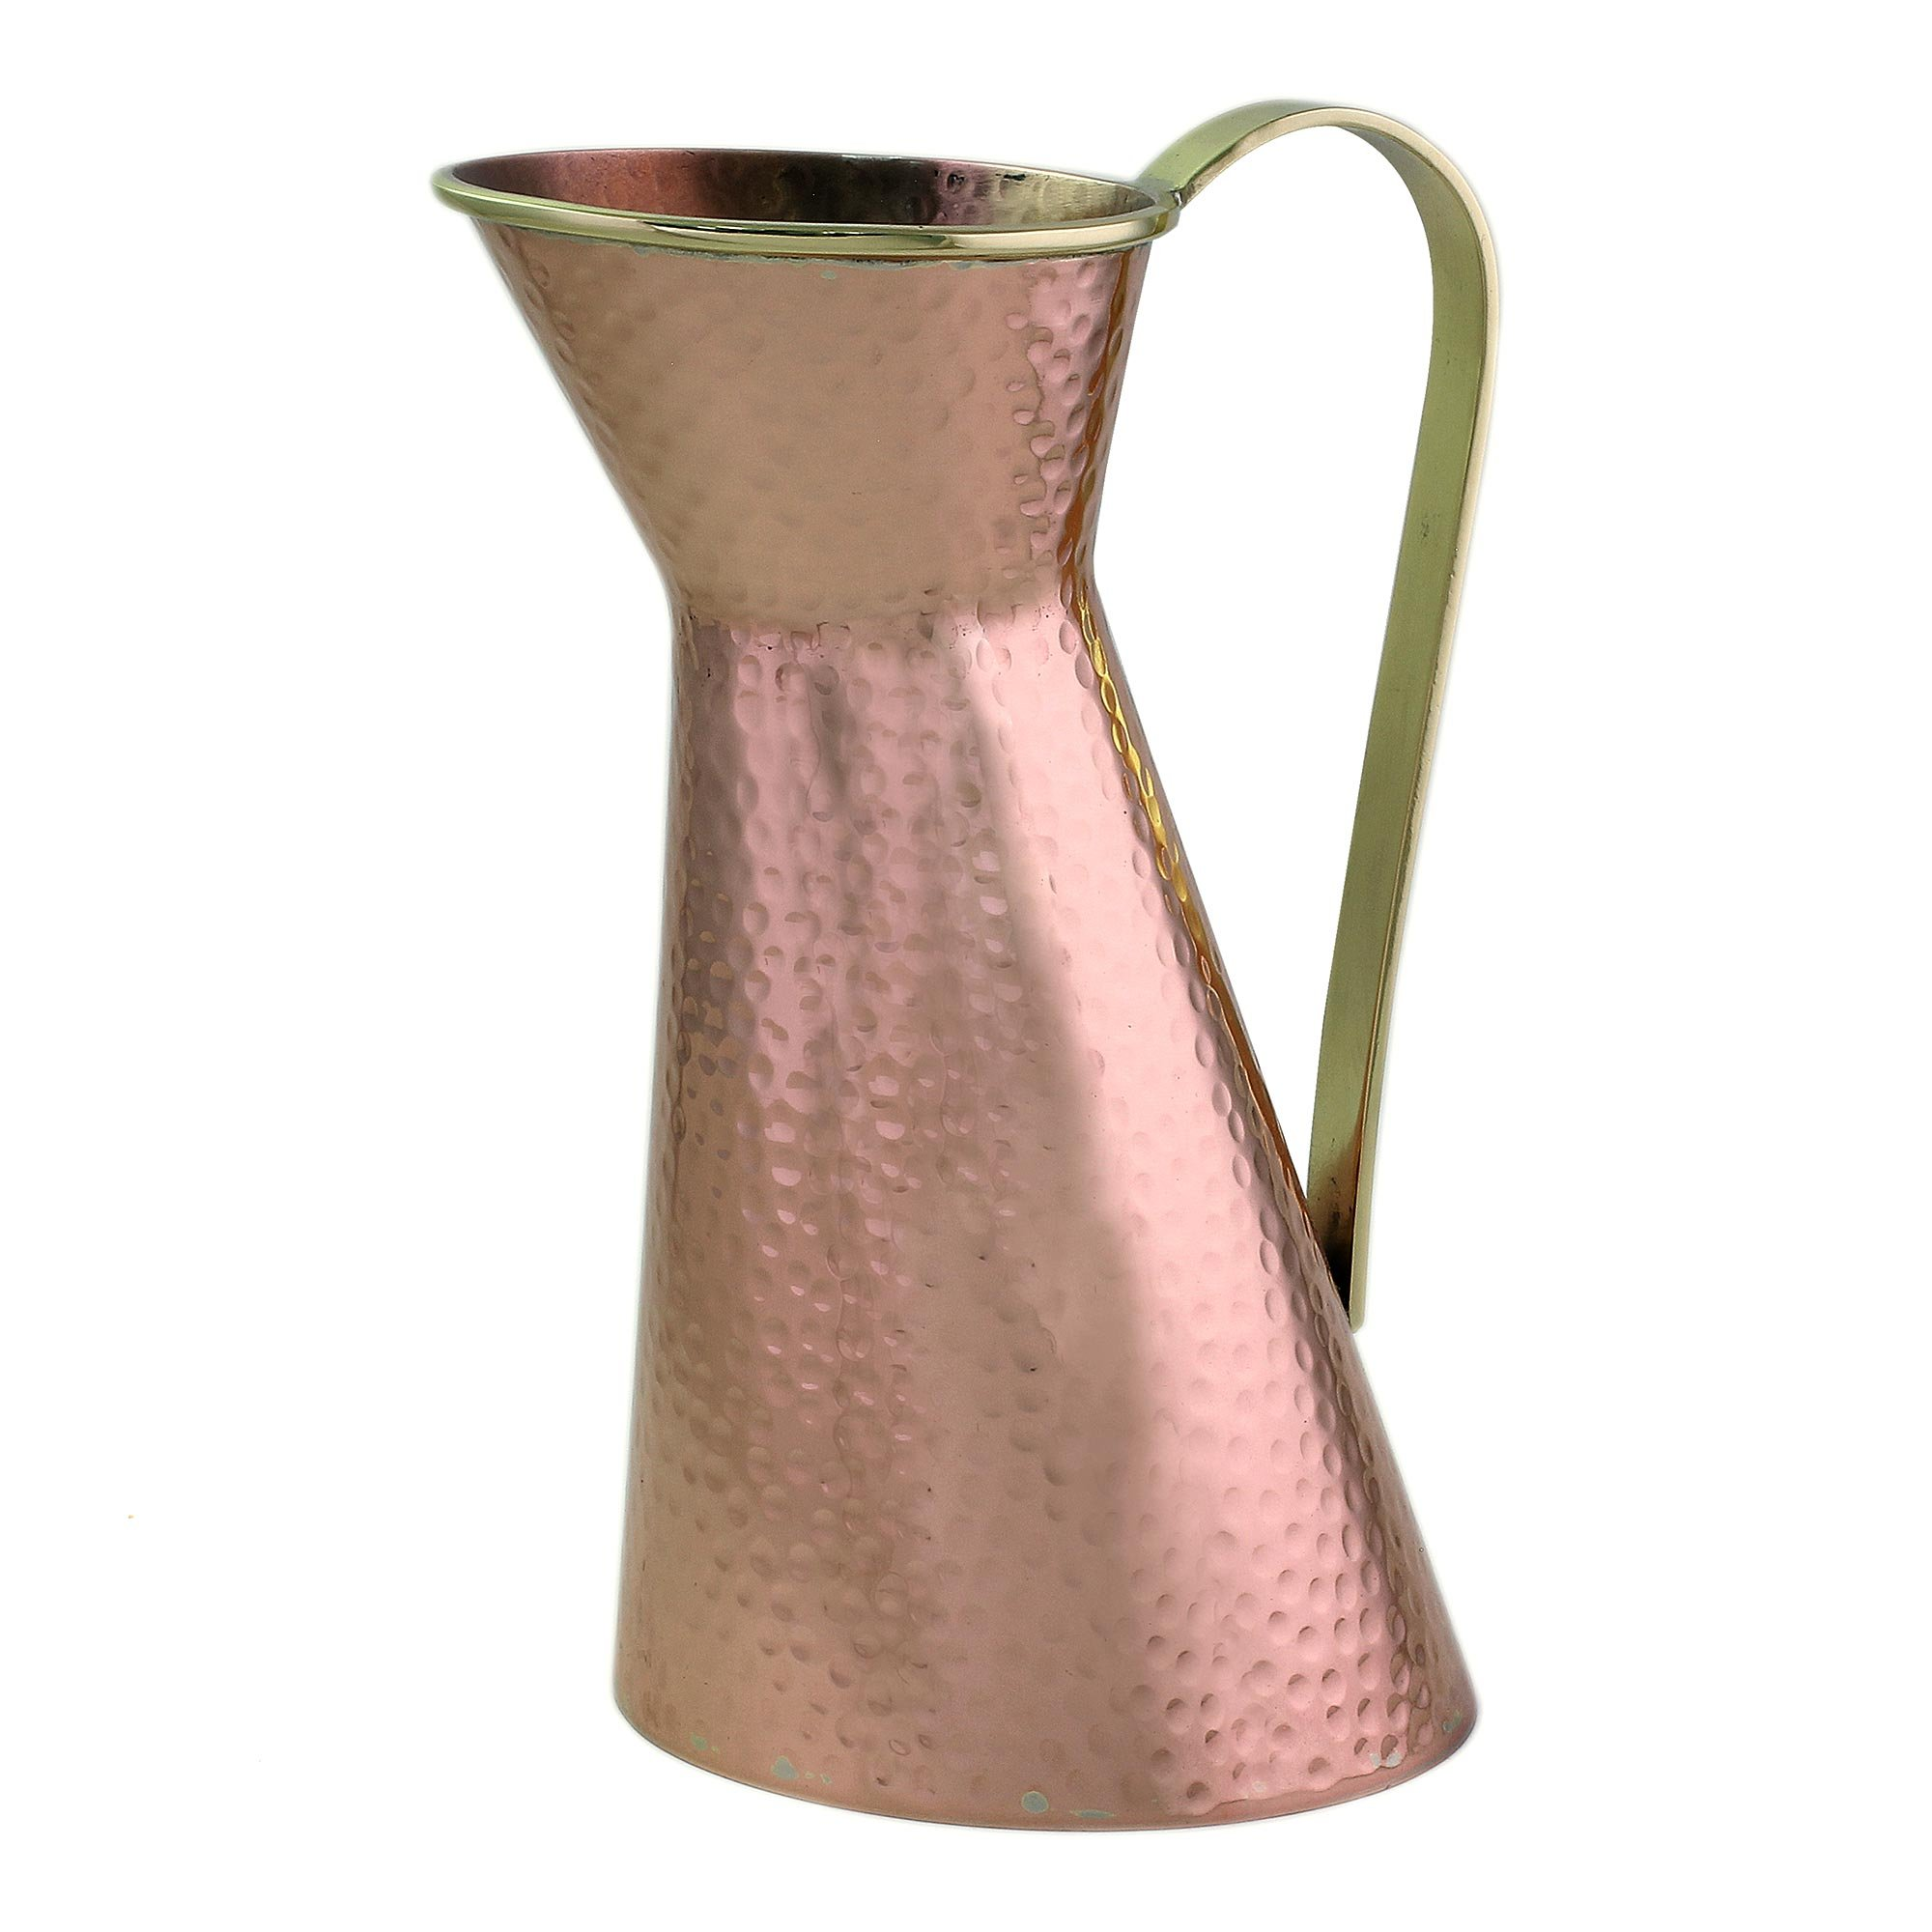 NOVICA Copper Hand Made Brass Rim and Handle Pitcher, 'Cheerful Feast' by NOVICA